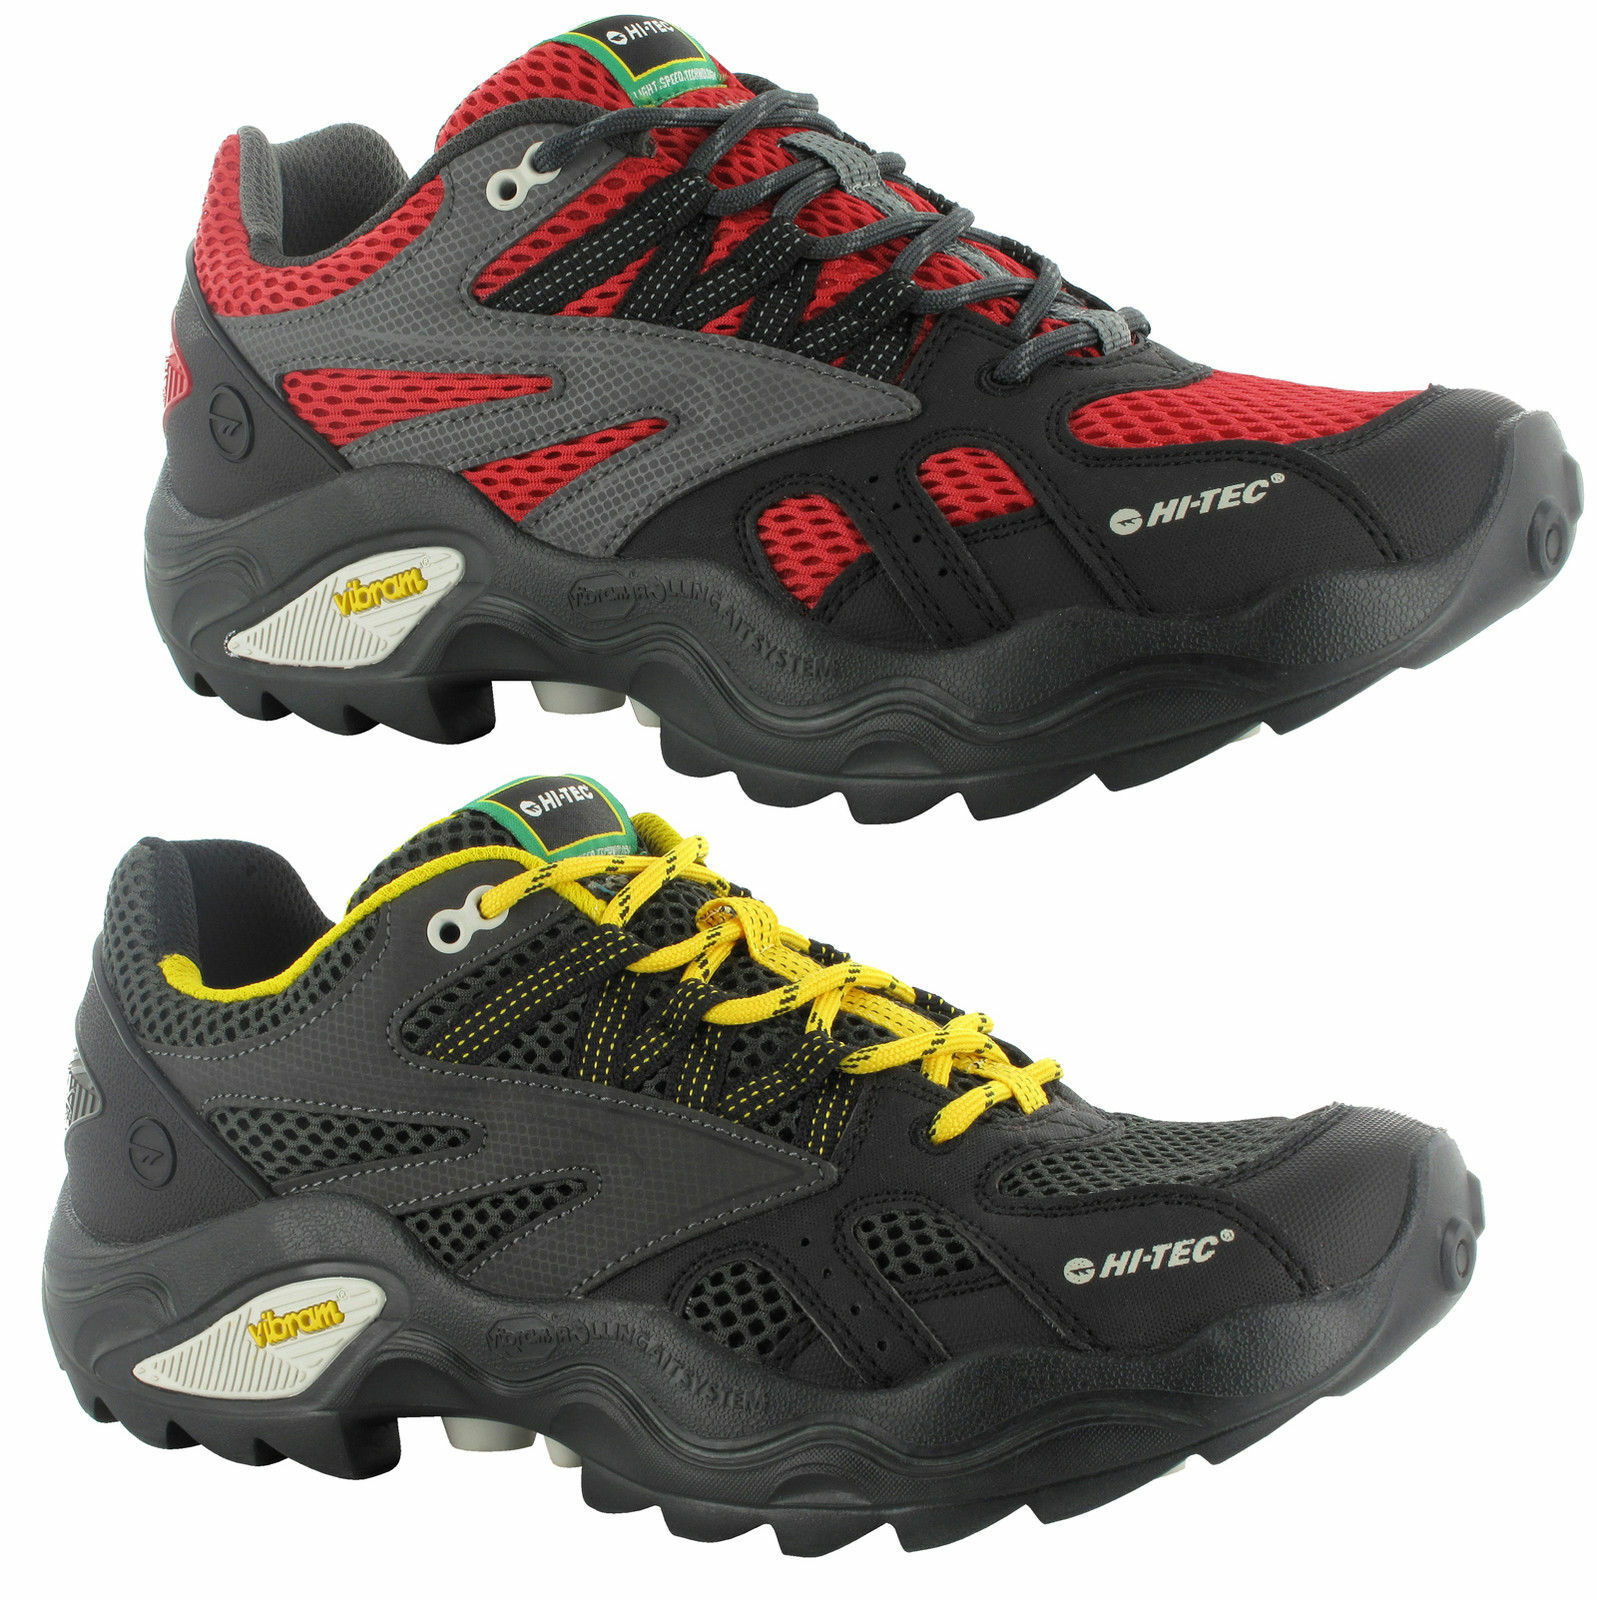 Hi-Tec Shield V-Lite Flash Force i Shield Hi-Tec Multisport Walking Hiking Trail Hombre Trainers 3e0d78